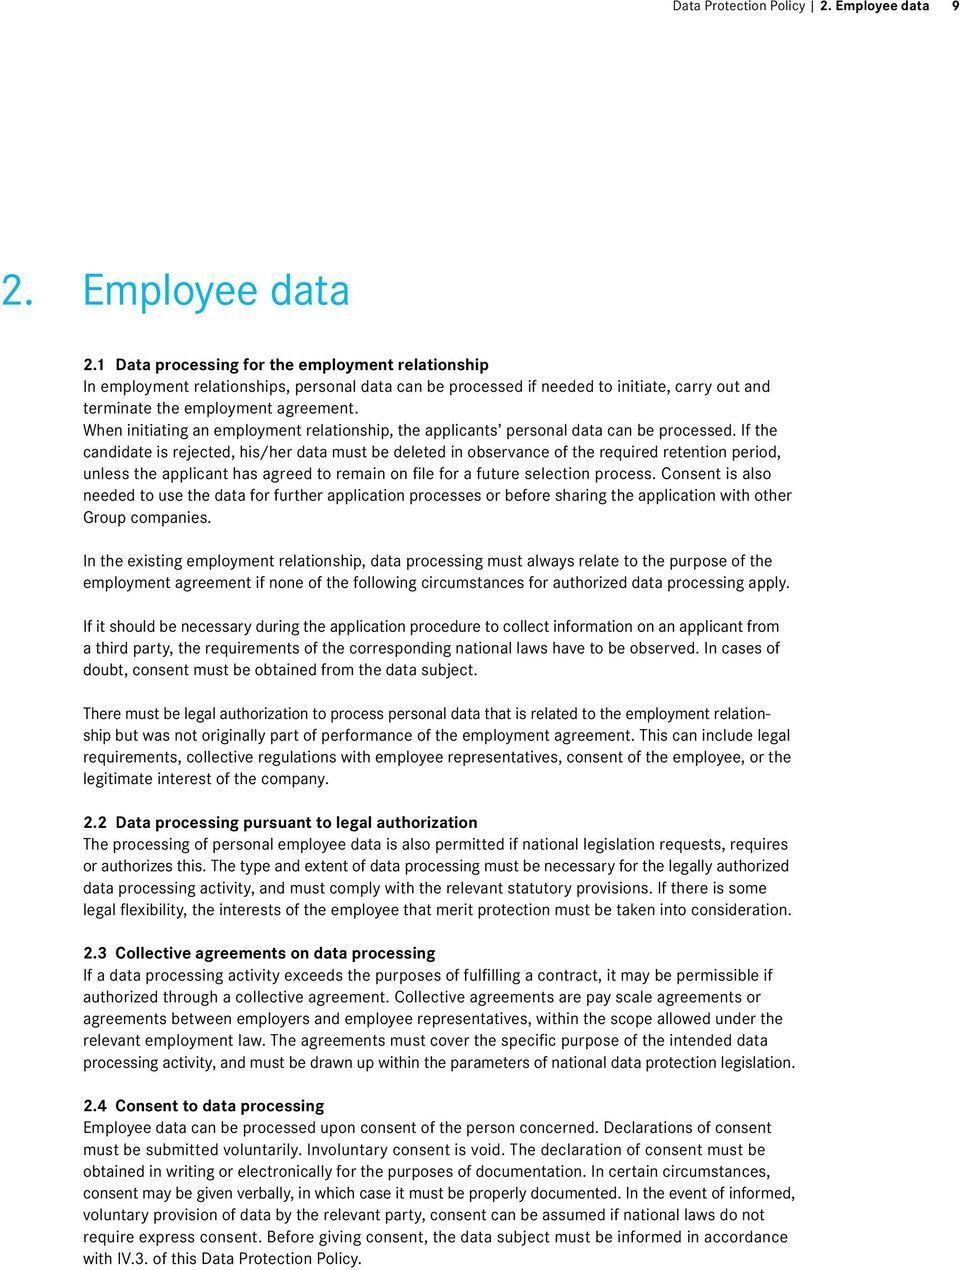 When initiating an employment relationship, the applicants personal data can be processed.